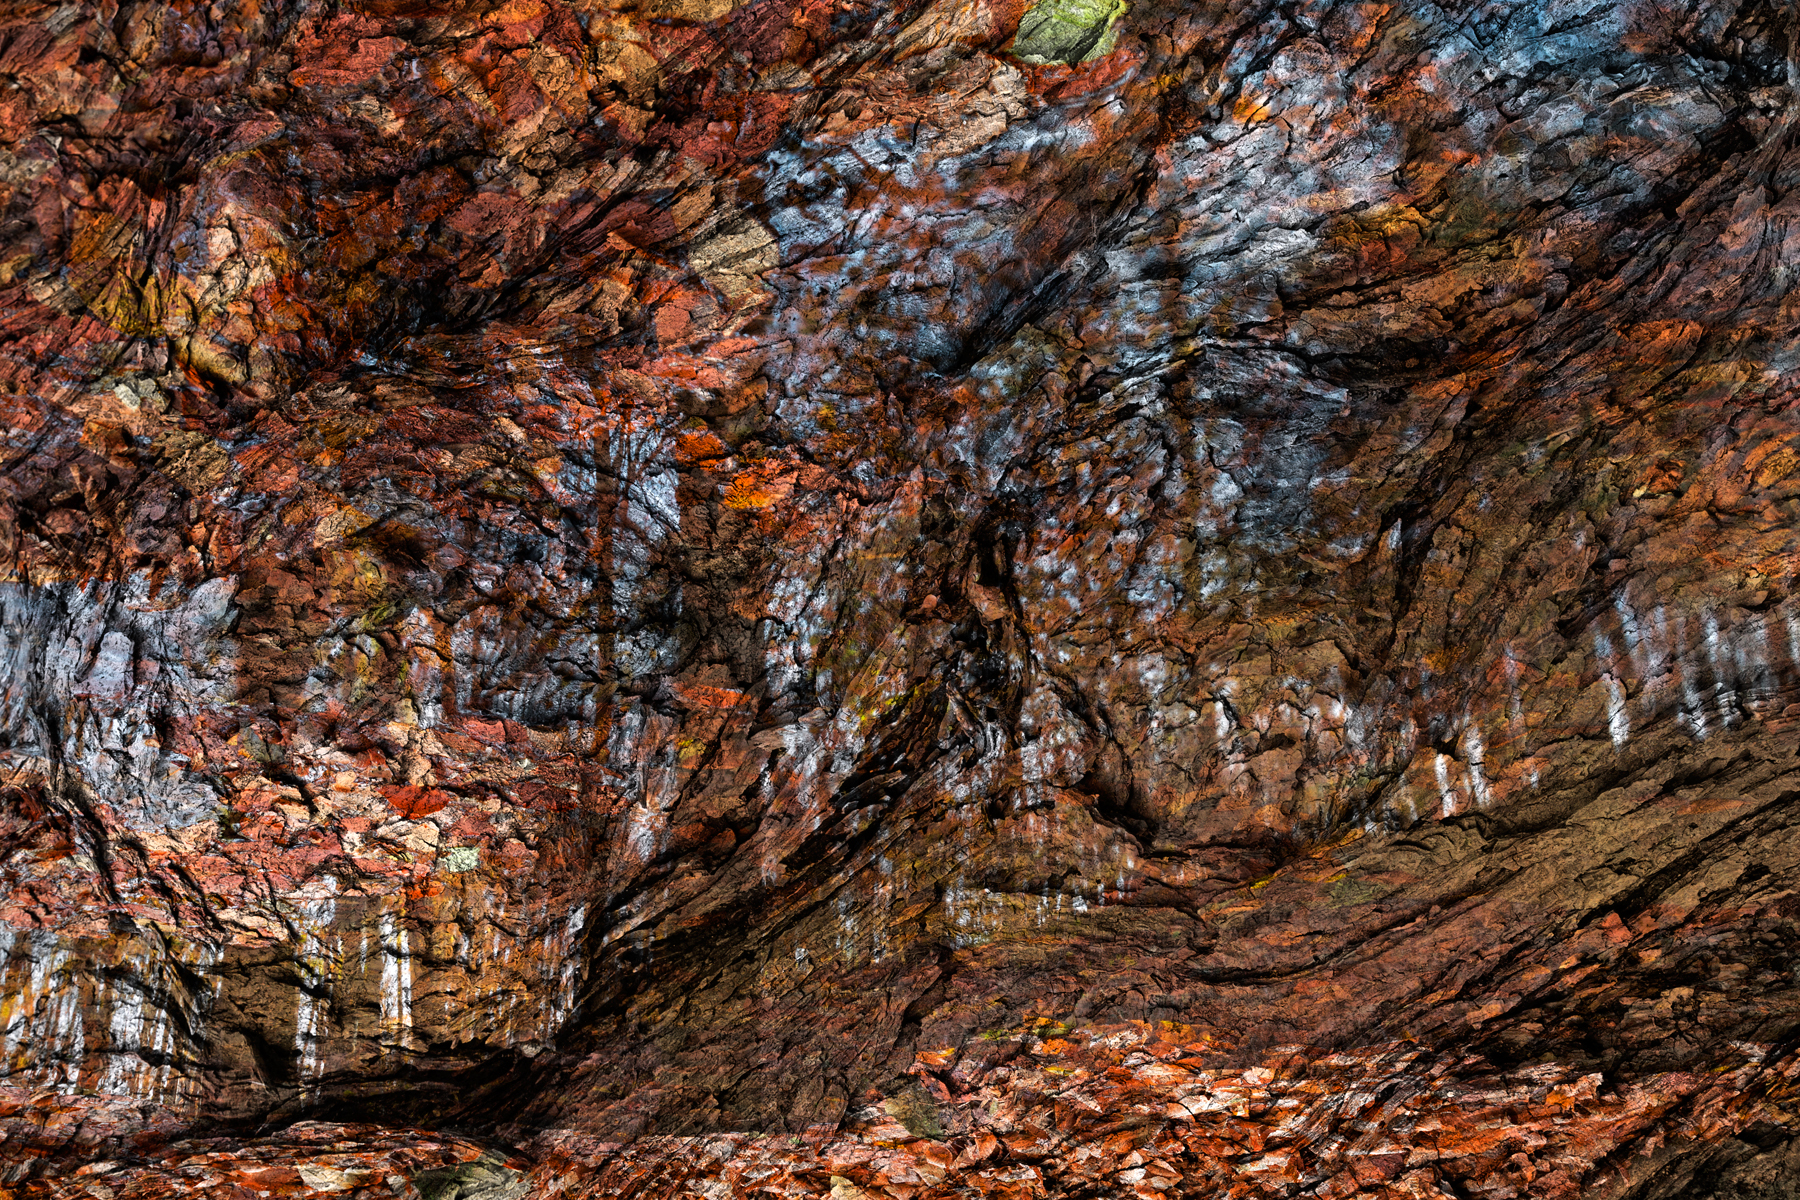 Avalon Wood Impressions, Abstract, S, Stream, States, HQ Photo